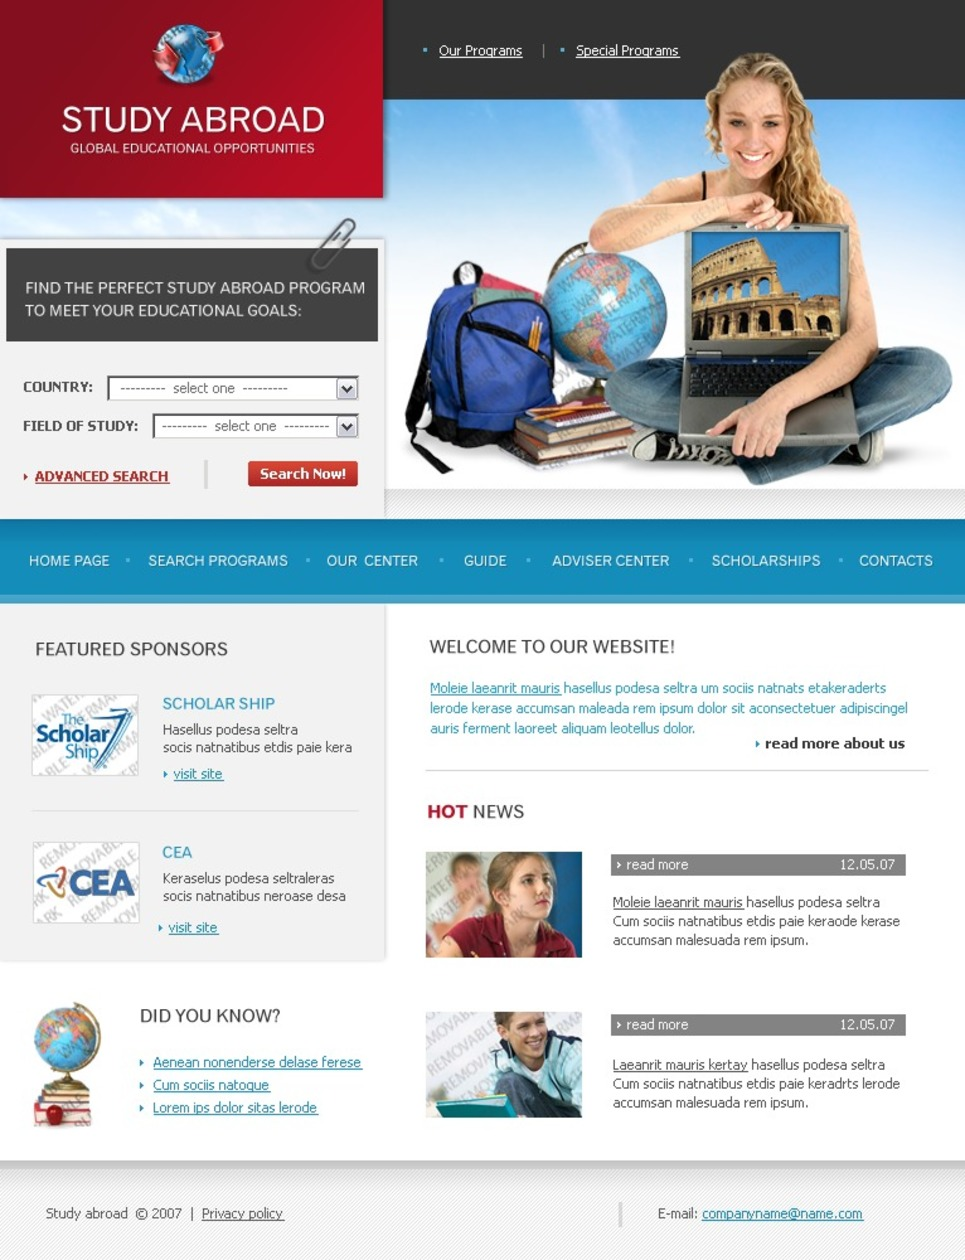 Free Web Site Templates (Flash Animated) Website Template New Screenshots BIG